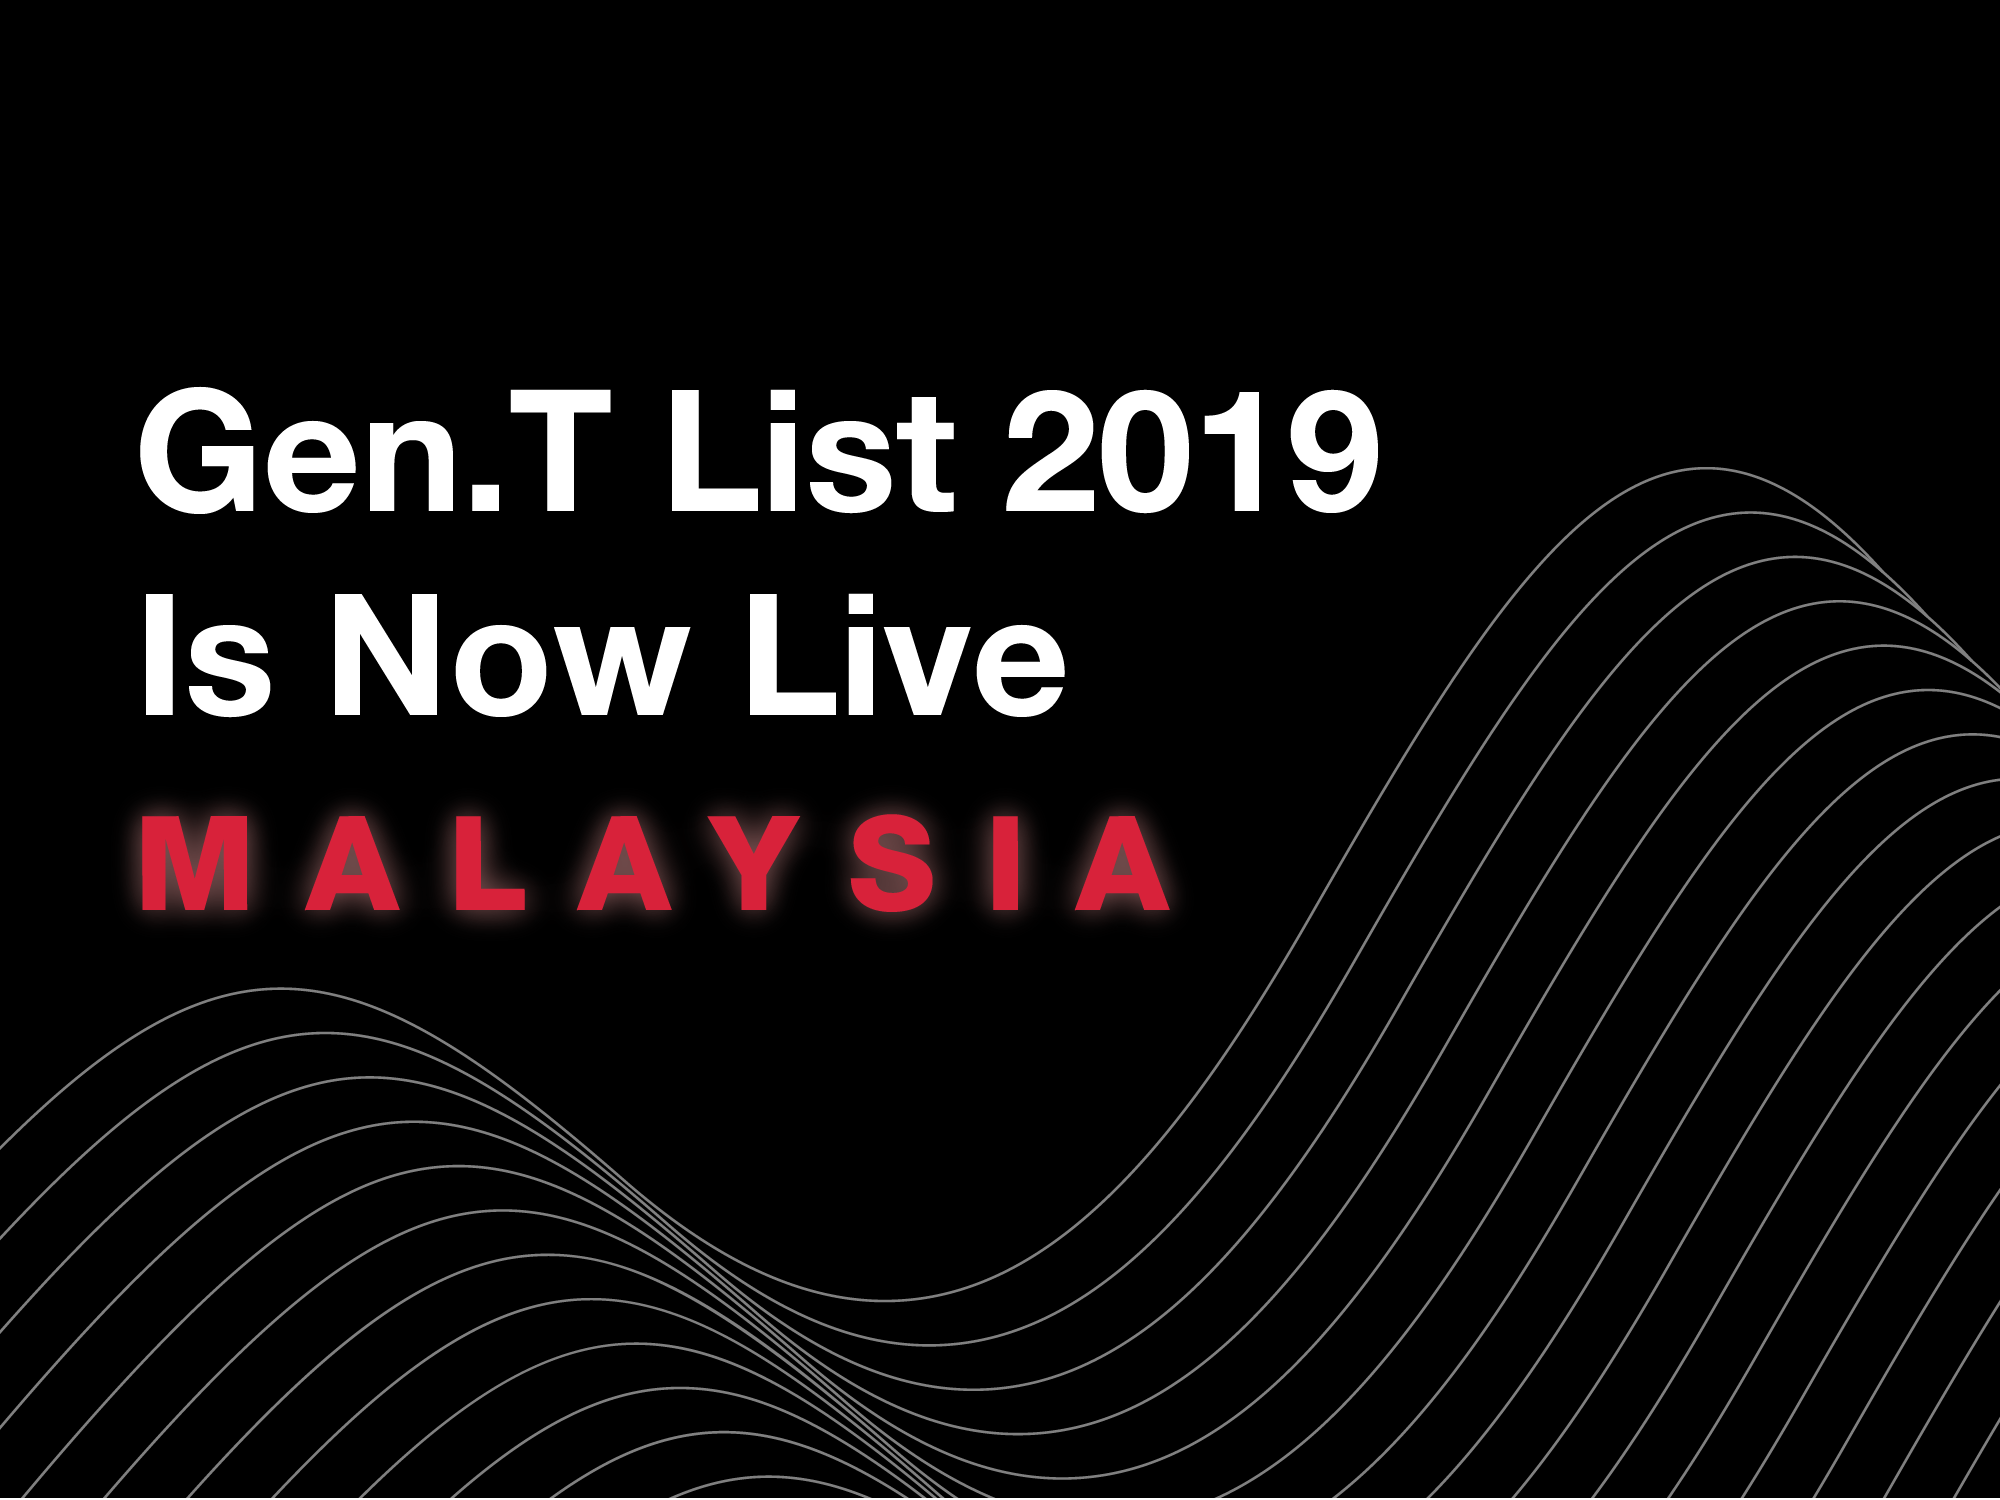 The Gen.T List 2019 Is Live: Meet Malaysia's 30 Honourees